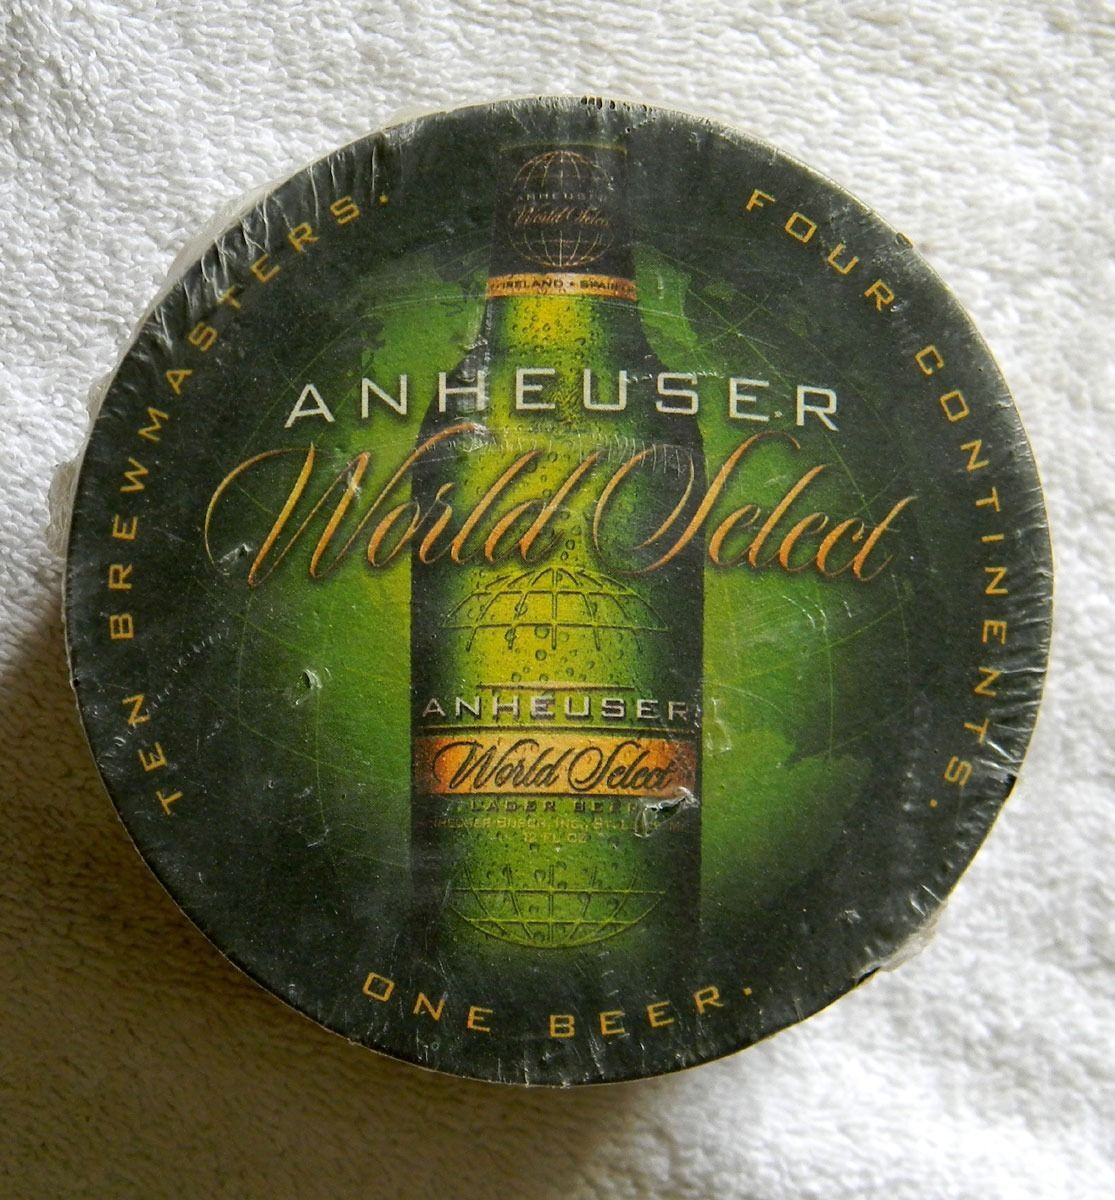 50 new cardboard anheuser world select beer coasters double sided retired coasters - Cardboard beer coasters ...